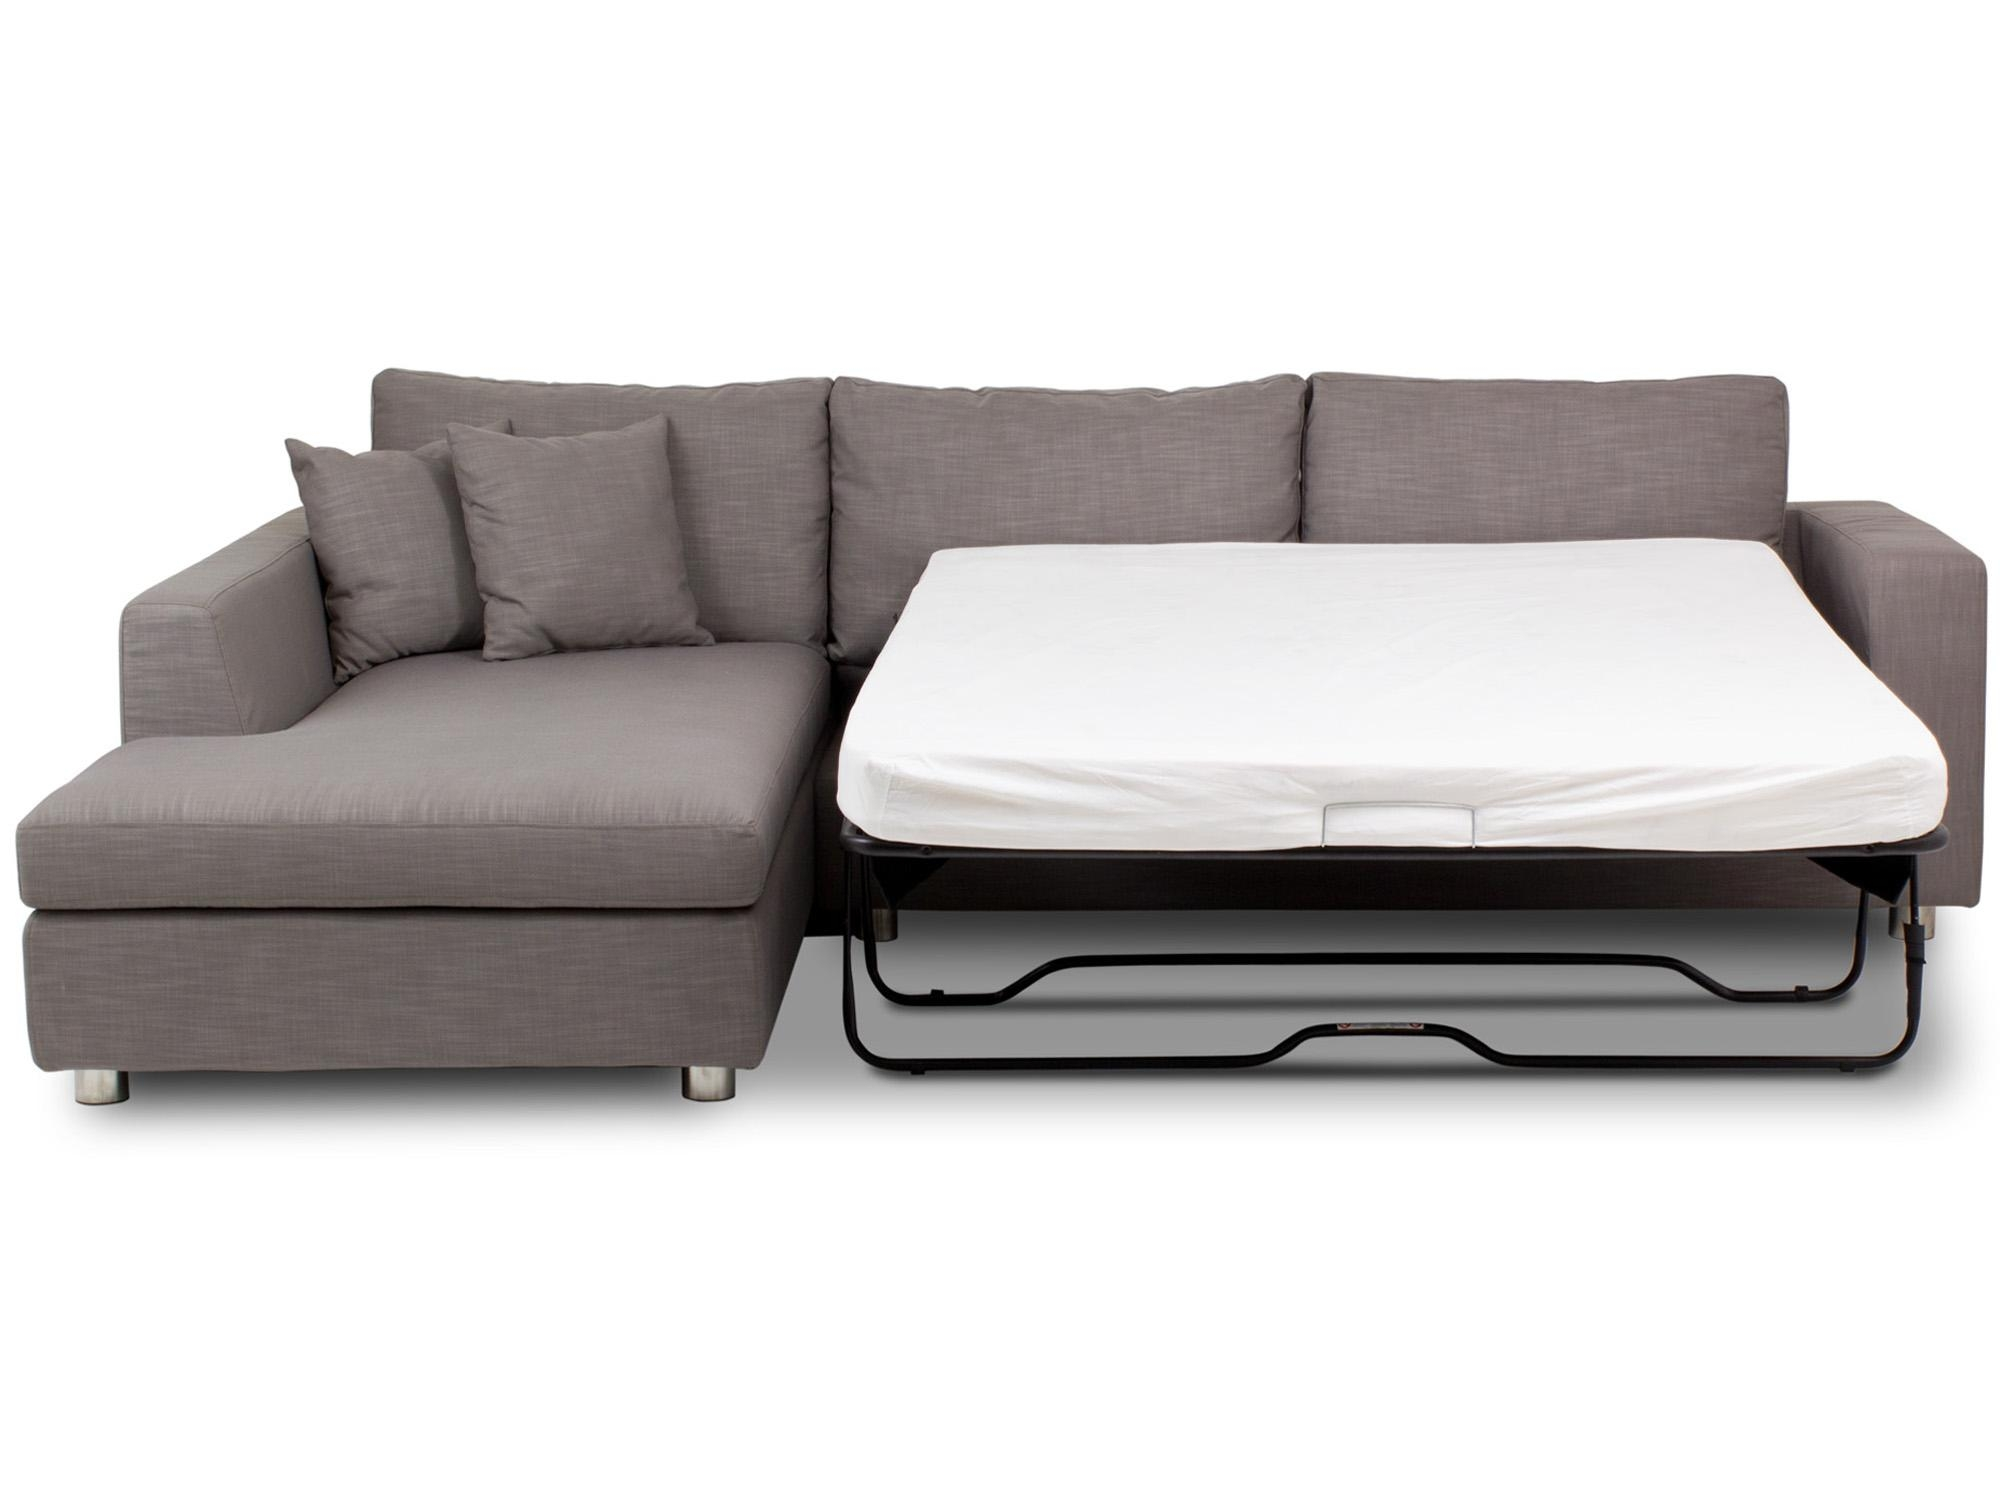 Chaise Sofa Sleeper With Storage | Tehranmix Decoration Pertaining To Sofa Beds With Storage Chaise (Image 3 of 20)